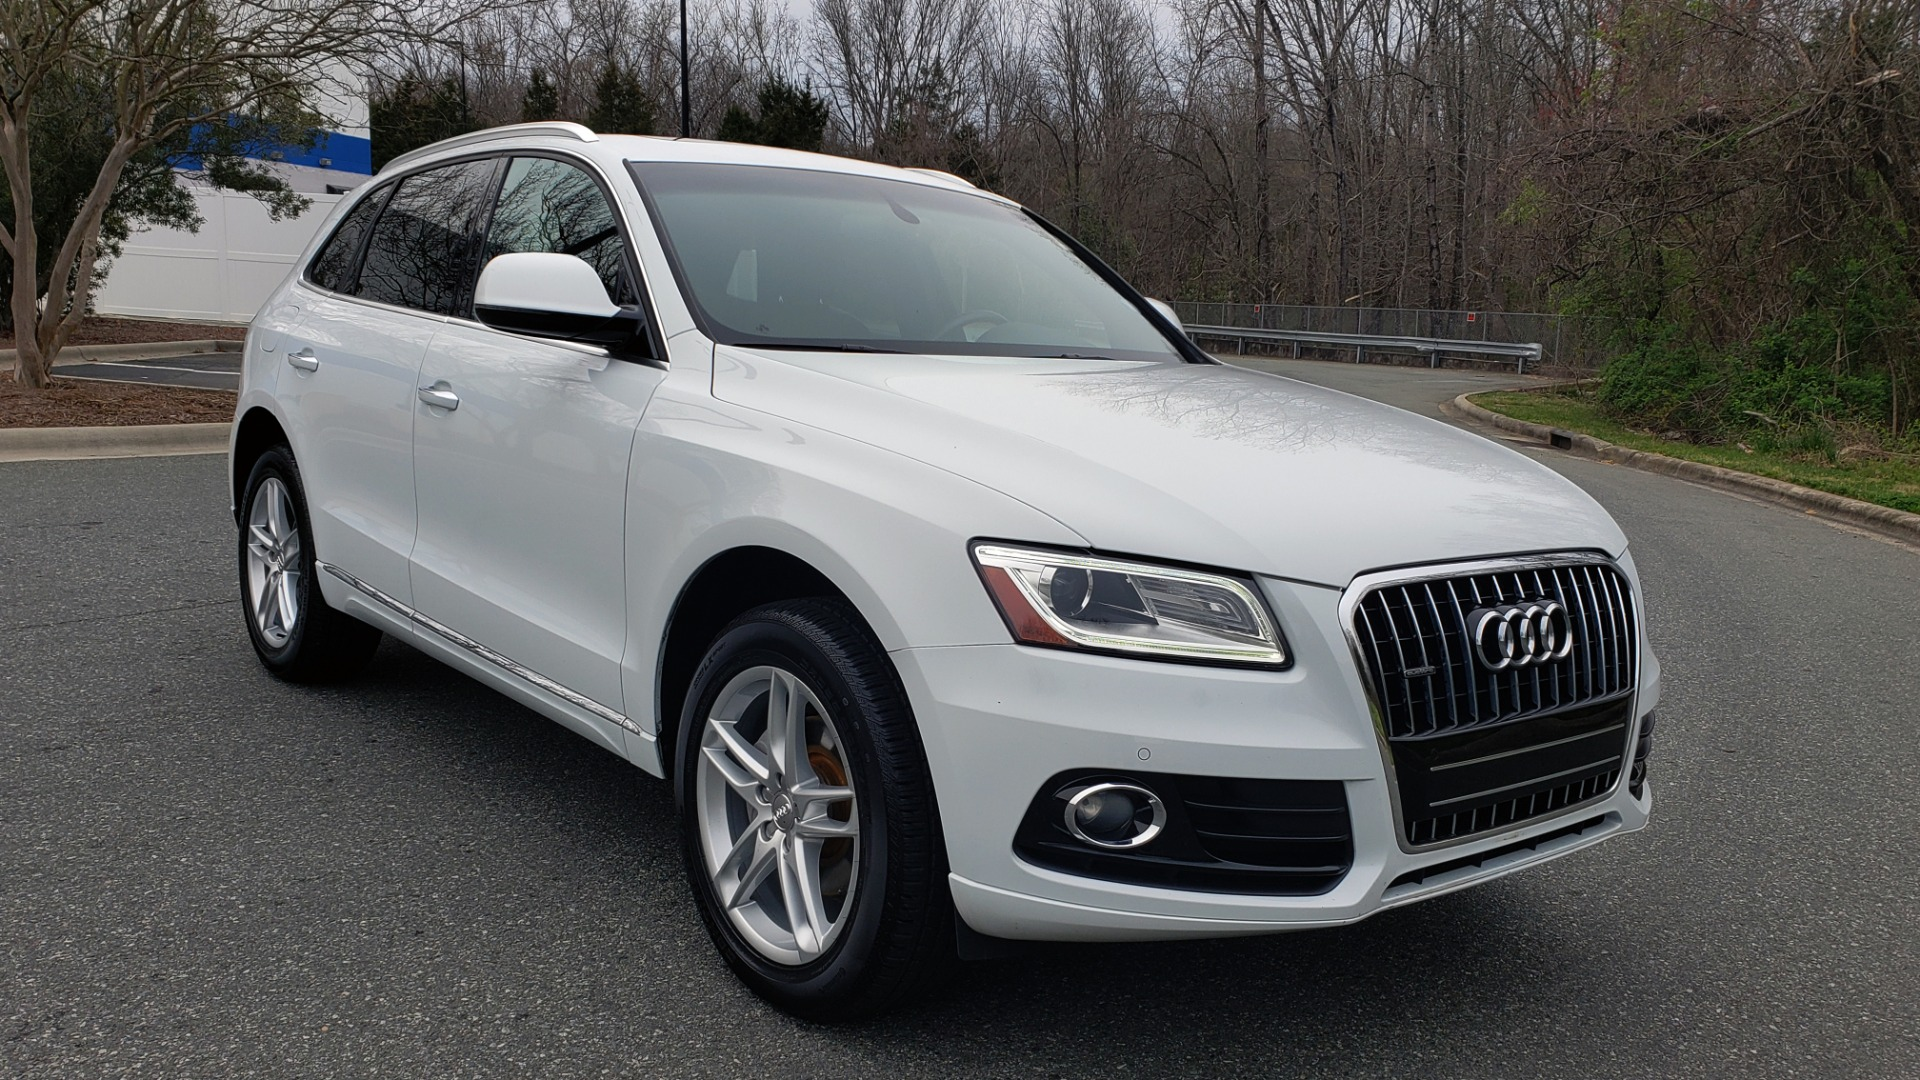 Used 2017 Audi Q5 PREMIUM PLUS / TECH / NAV / PANO-ROOF / B&O SND / REARVIEW for sale Sold at Formula Imports in Charlotte NC 28227 4